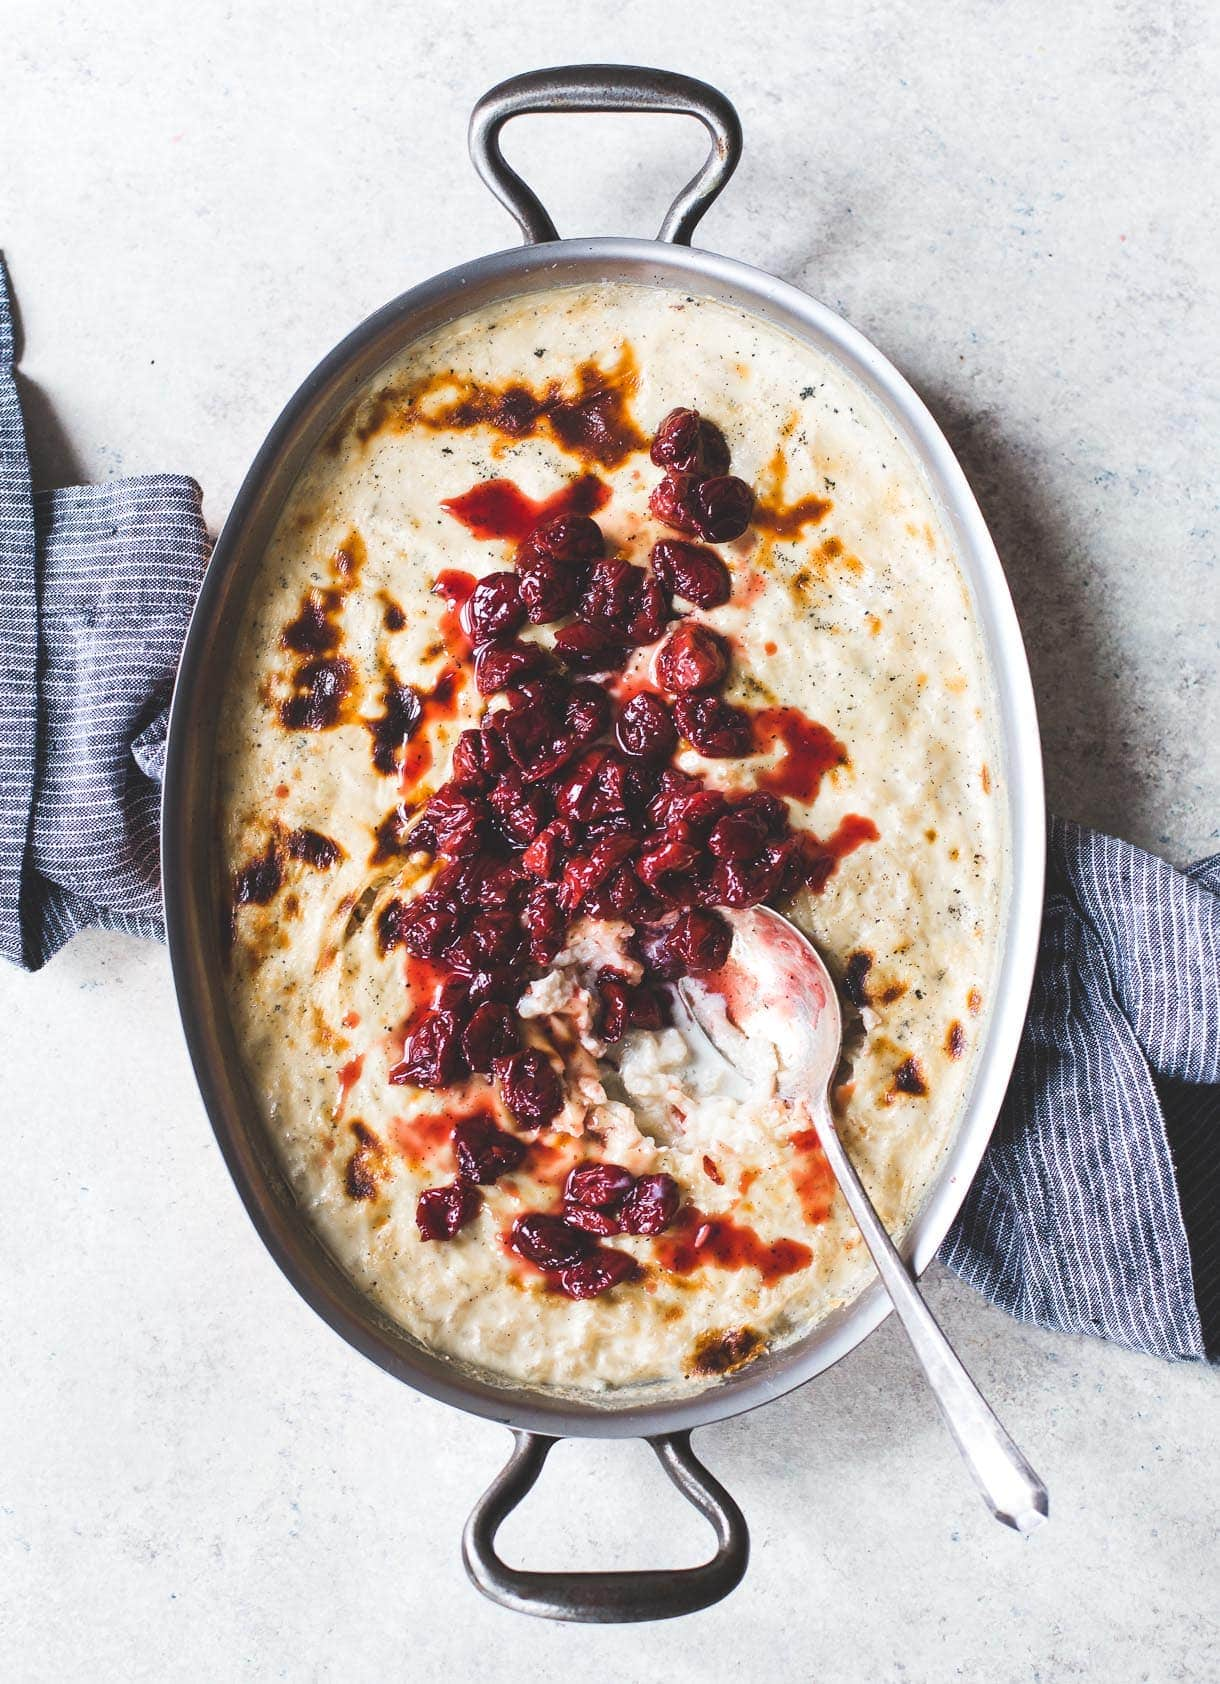 Effortless Baked Rice Pudding with Tart Cherries {gluten-free dessert}